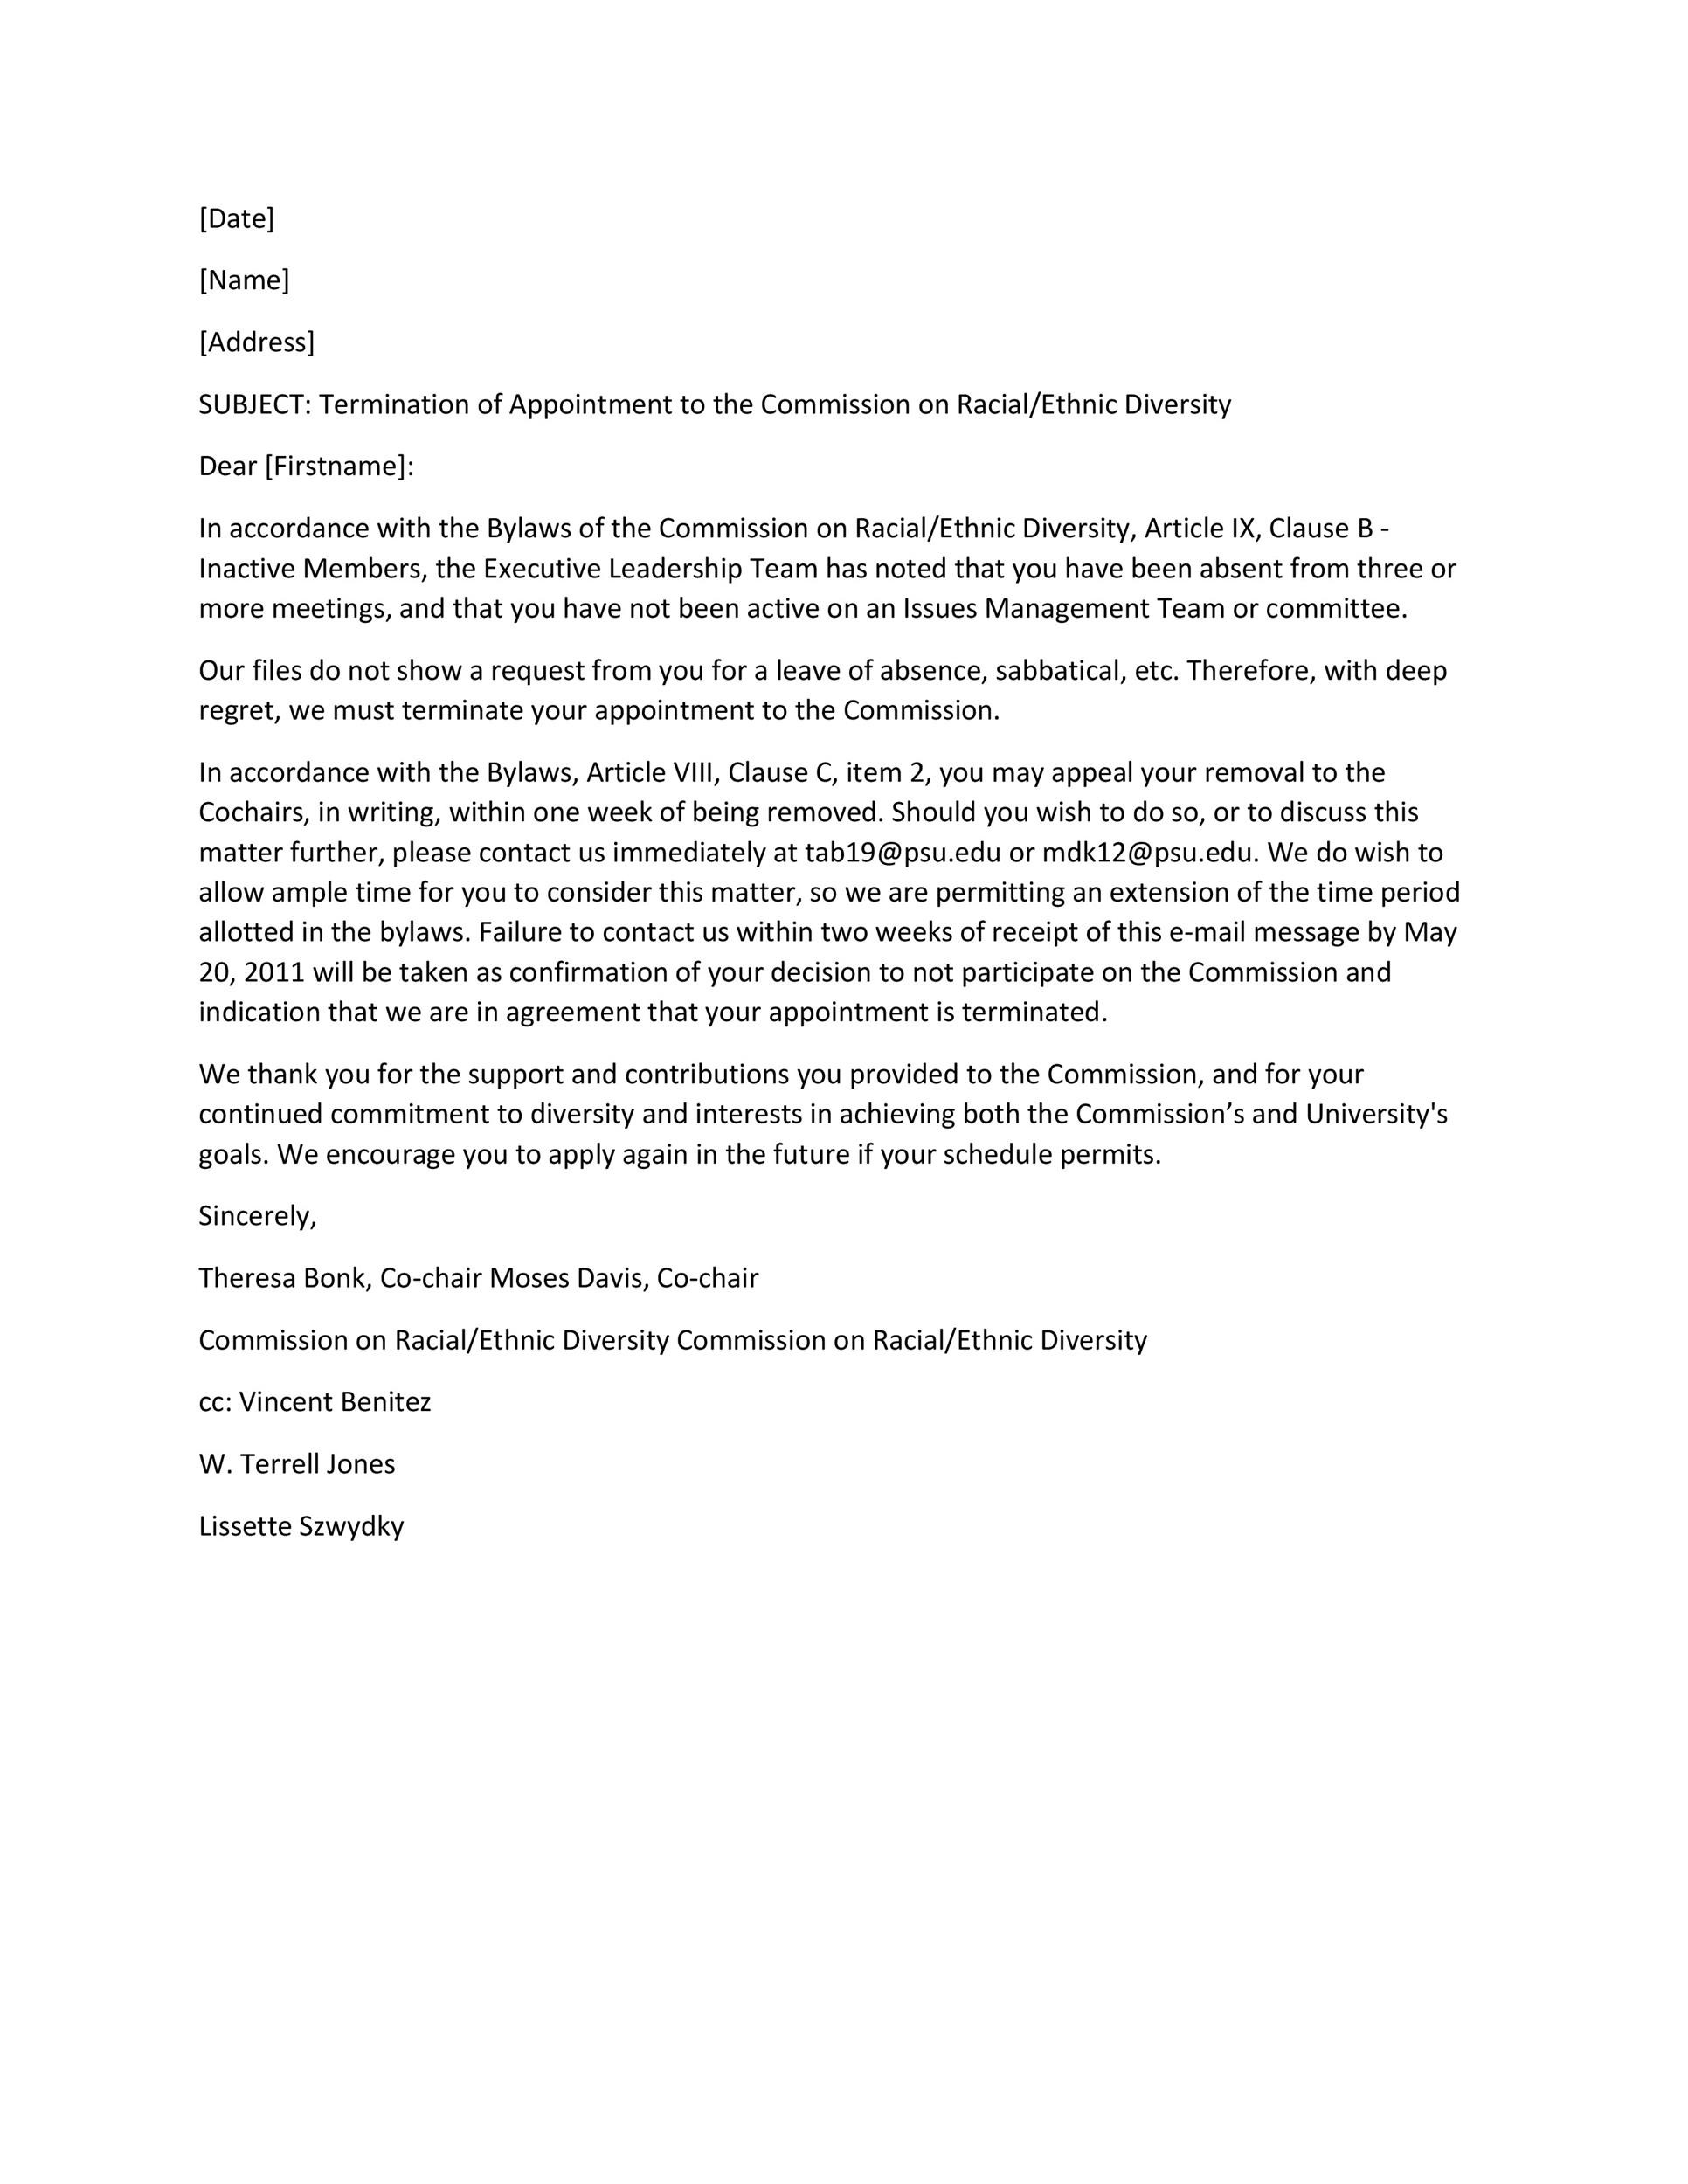 35 Perfect Termination Letter Samples Lease, Employee, Contract - termination letters